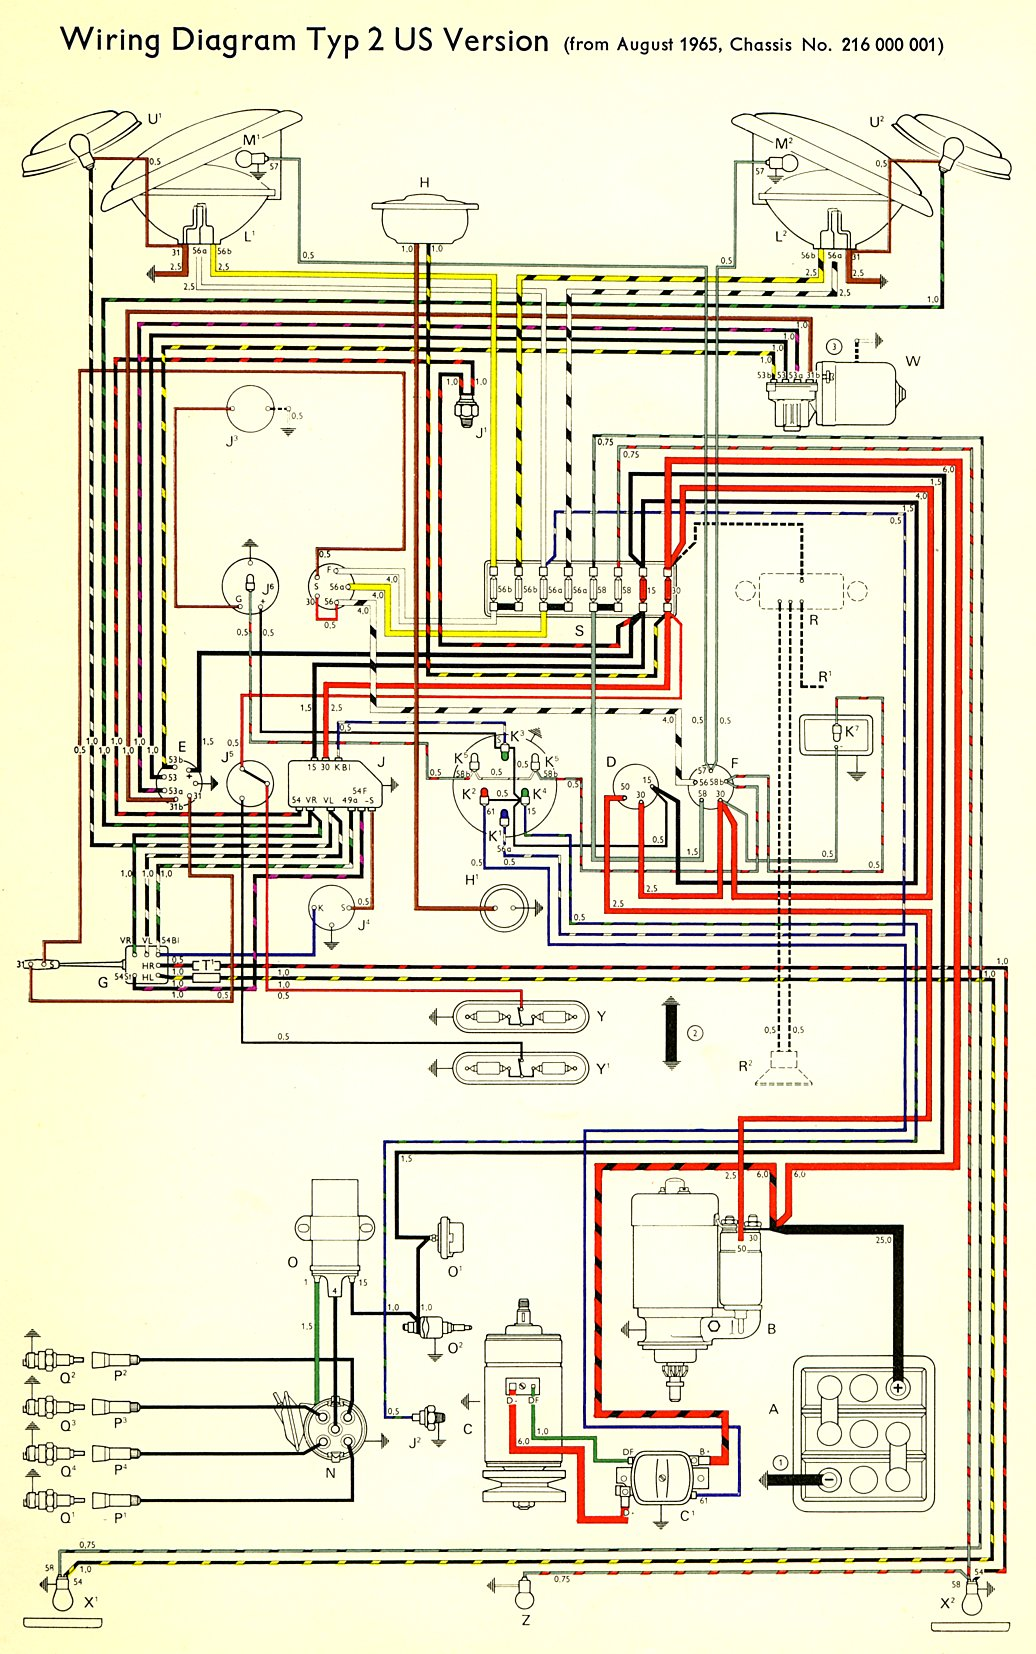 1966 bus wiring diagram usa thegoldenbugcom wire center \u2022 66 vw wiring diagram 1966 bus wiring diagram usa thegoldenbug com rh thegoldenbug com